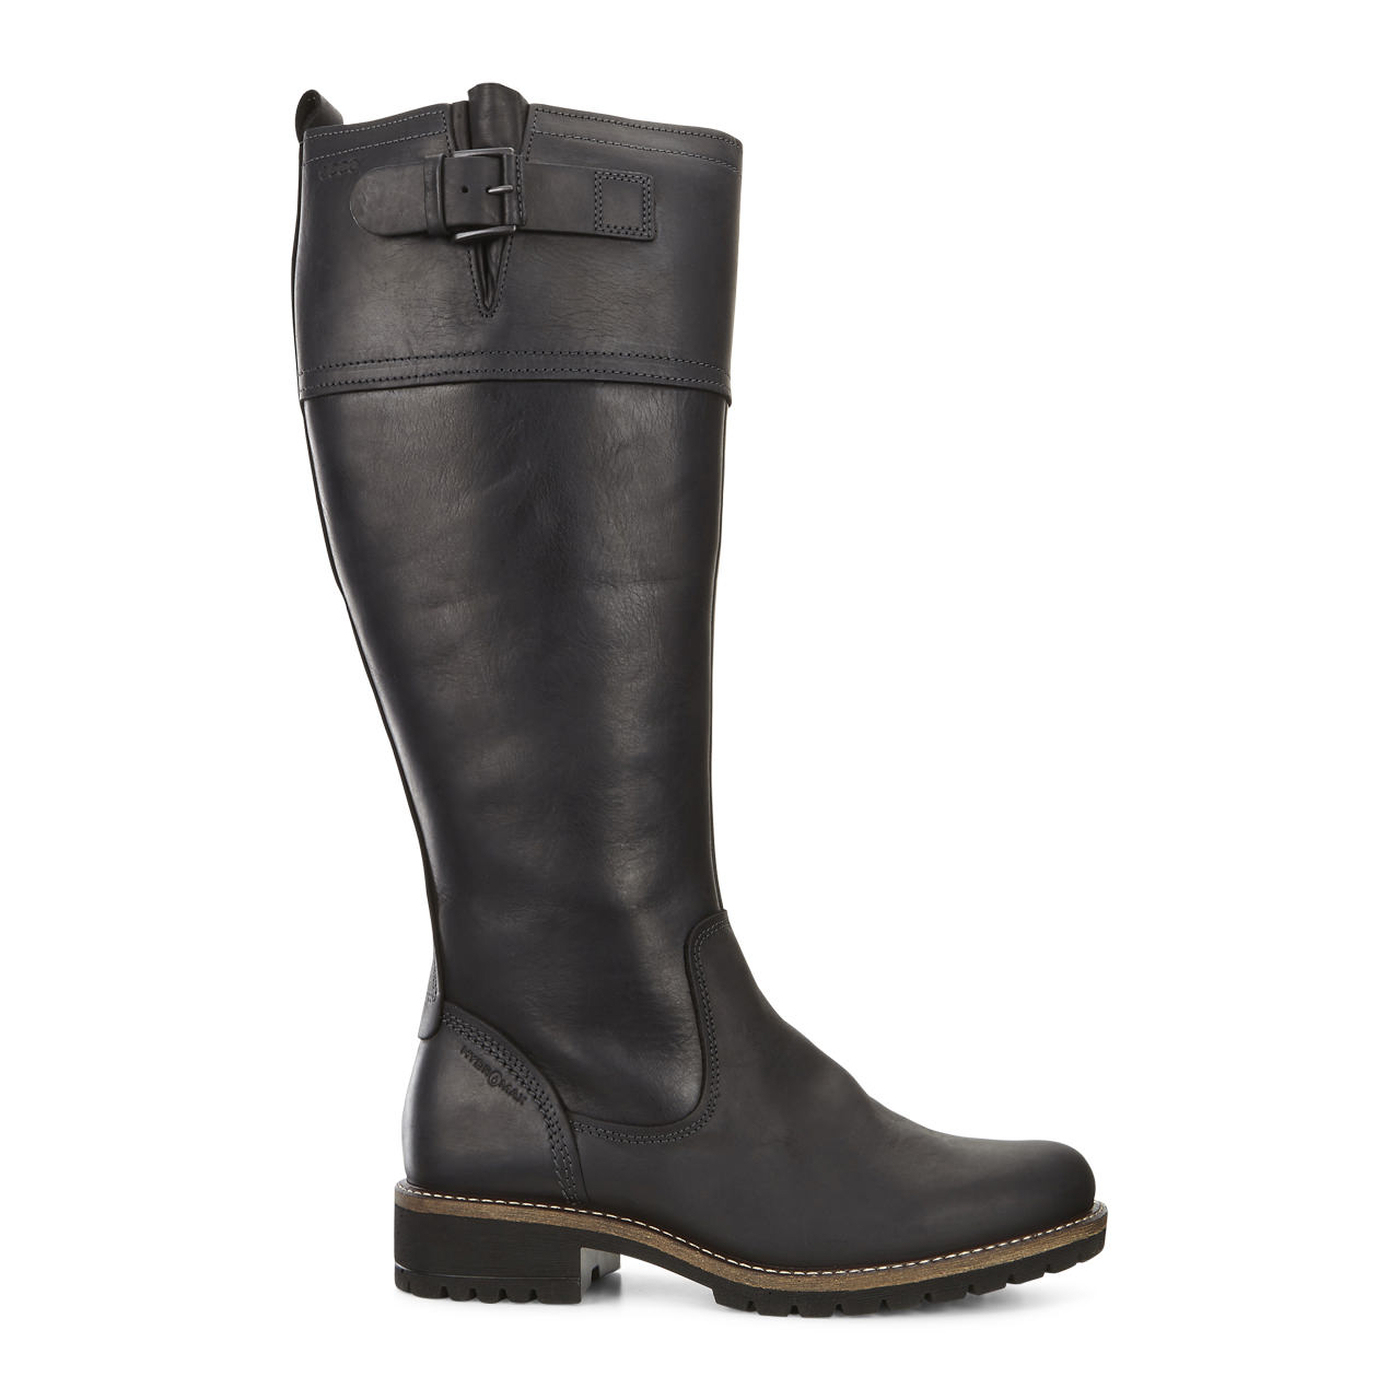 ECCO Elaine Tall Boot Buckle